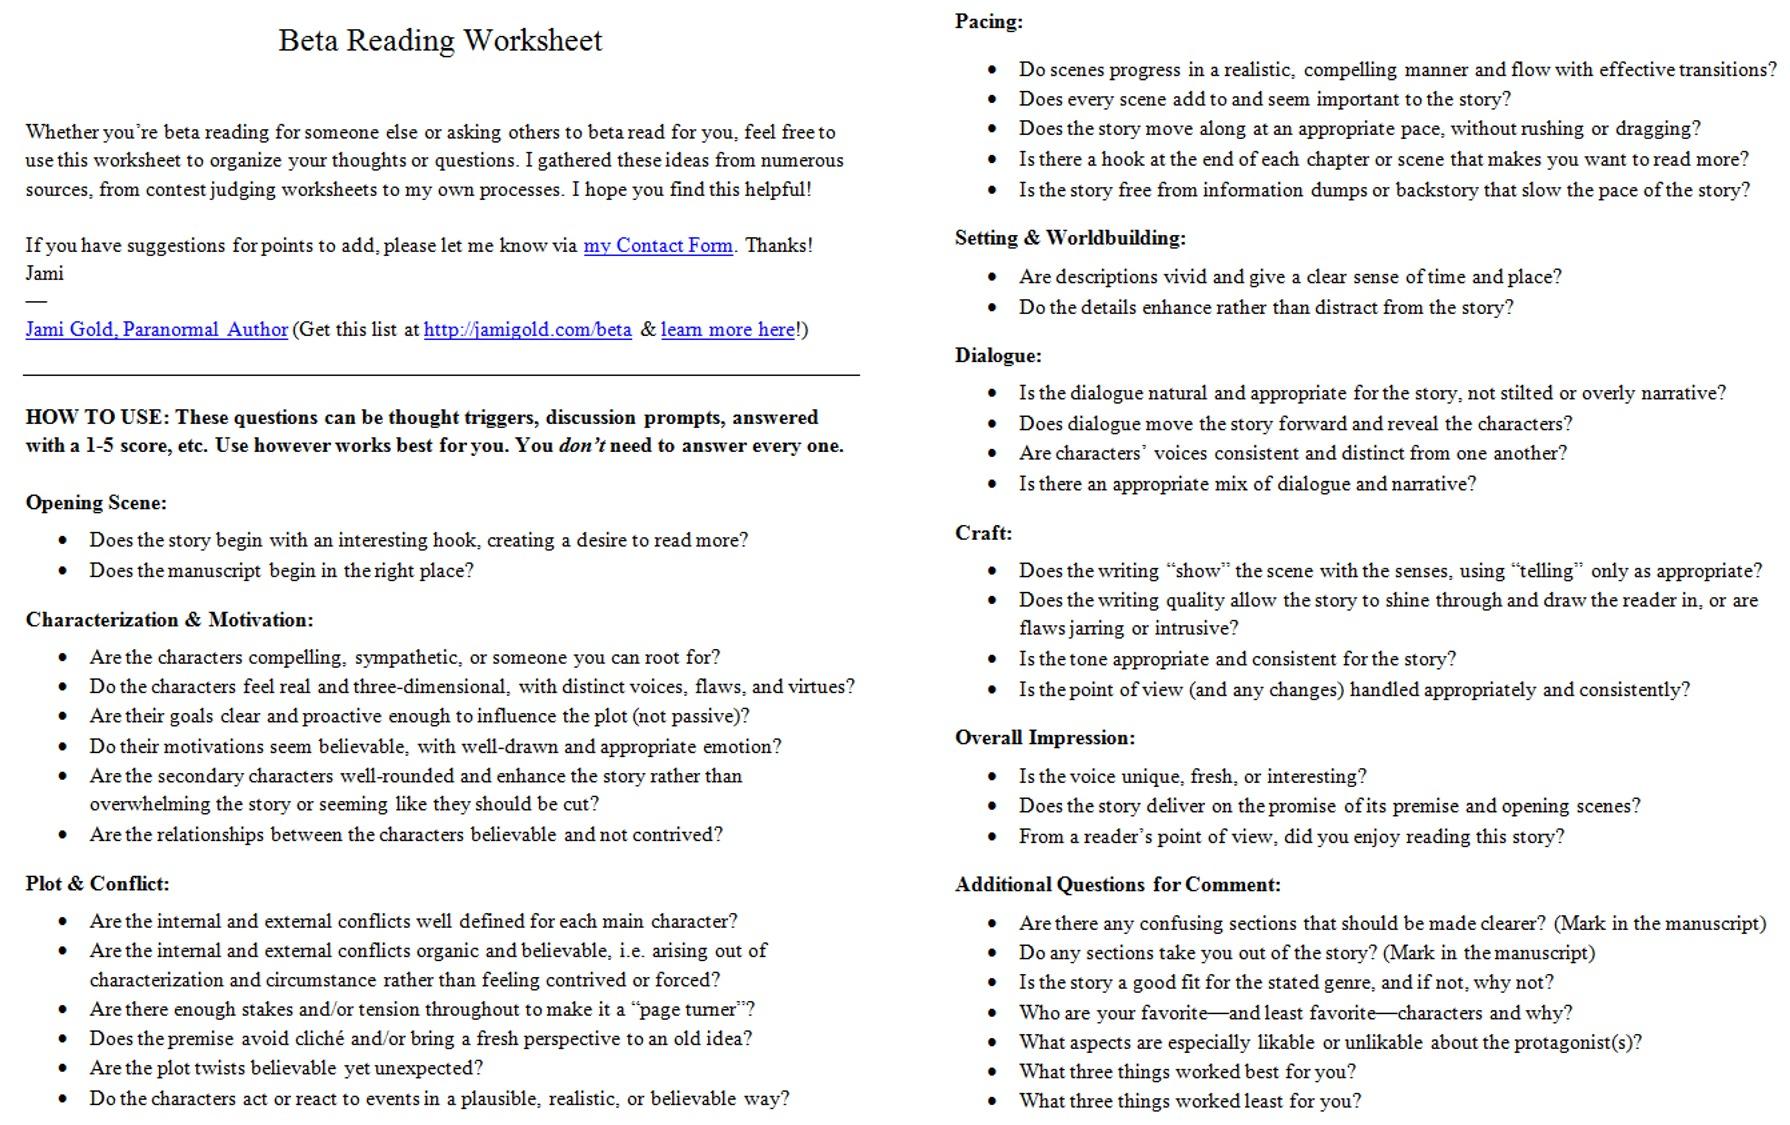 Aldiablosus  Wonderful Worksheets For Writers  Jami Gold Paranormal Author With Likable Screen Shot Of The Twopage Beta Reading Worksheet With Amazing Mixed Numbers Worksheets Also Rd Grade Math Worksheet In Addition Stoichiometry Practice Problems Worksheet And The Nature Of Sound Waves Worksheet Answers As Well As Cell Theory Worksheet Additionally Fetal Pig Dissection Worksheet From Jamigoldcom With Aldiablosus  Likable Worksheets For Writers  Jami Gold Paranormal Author With Amazing Screen Shot Of The Twopage Beta Reading Worksheet And Wonderful Mixed Numbers Worksheets Also Rd Grade Math Worksheet In Addition Stoichiometry Practice Problems Worksheet From Jamigoldcom